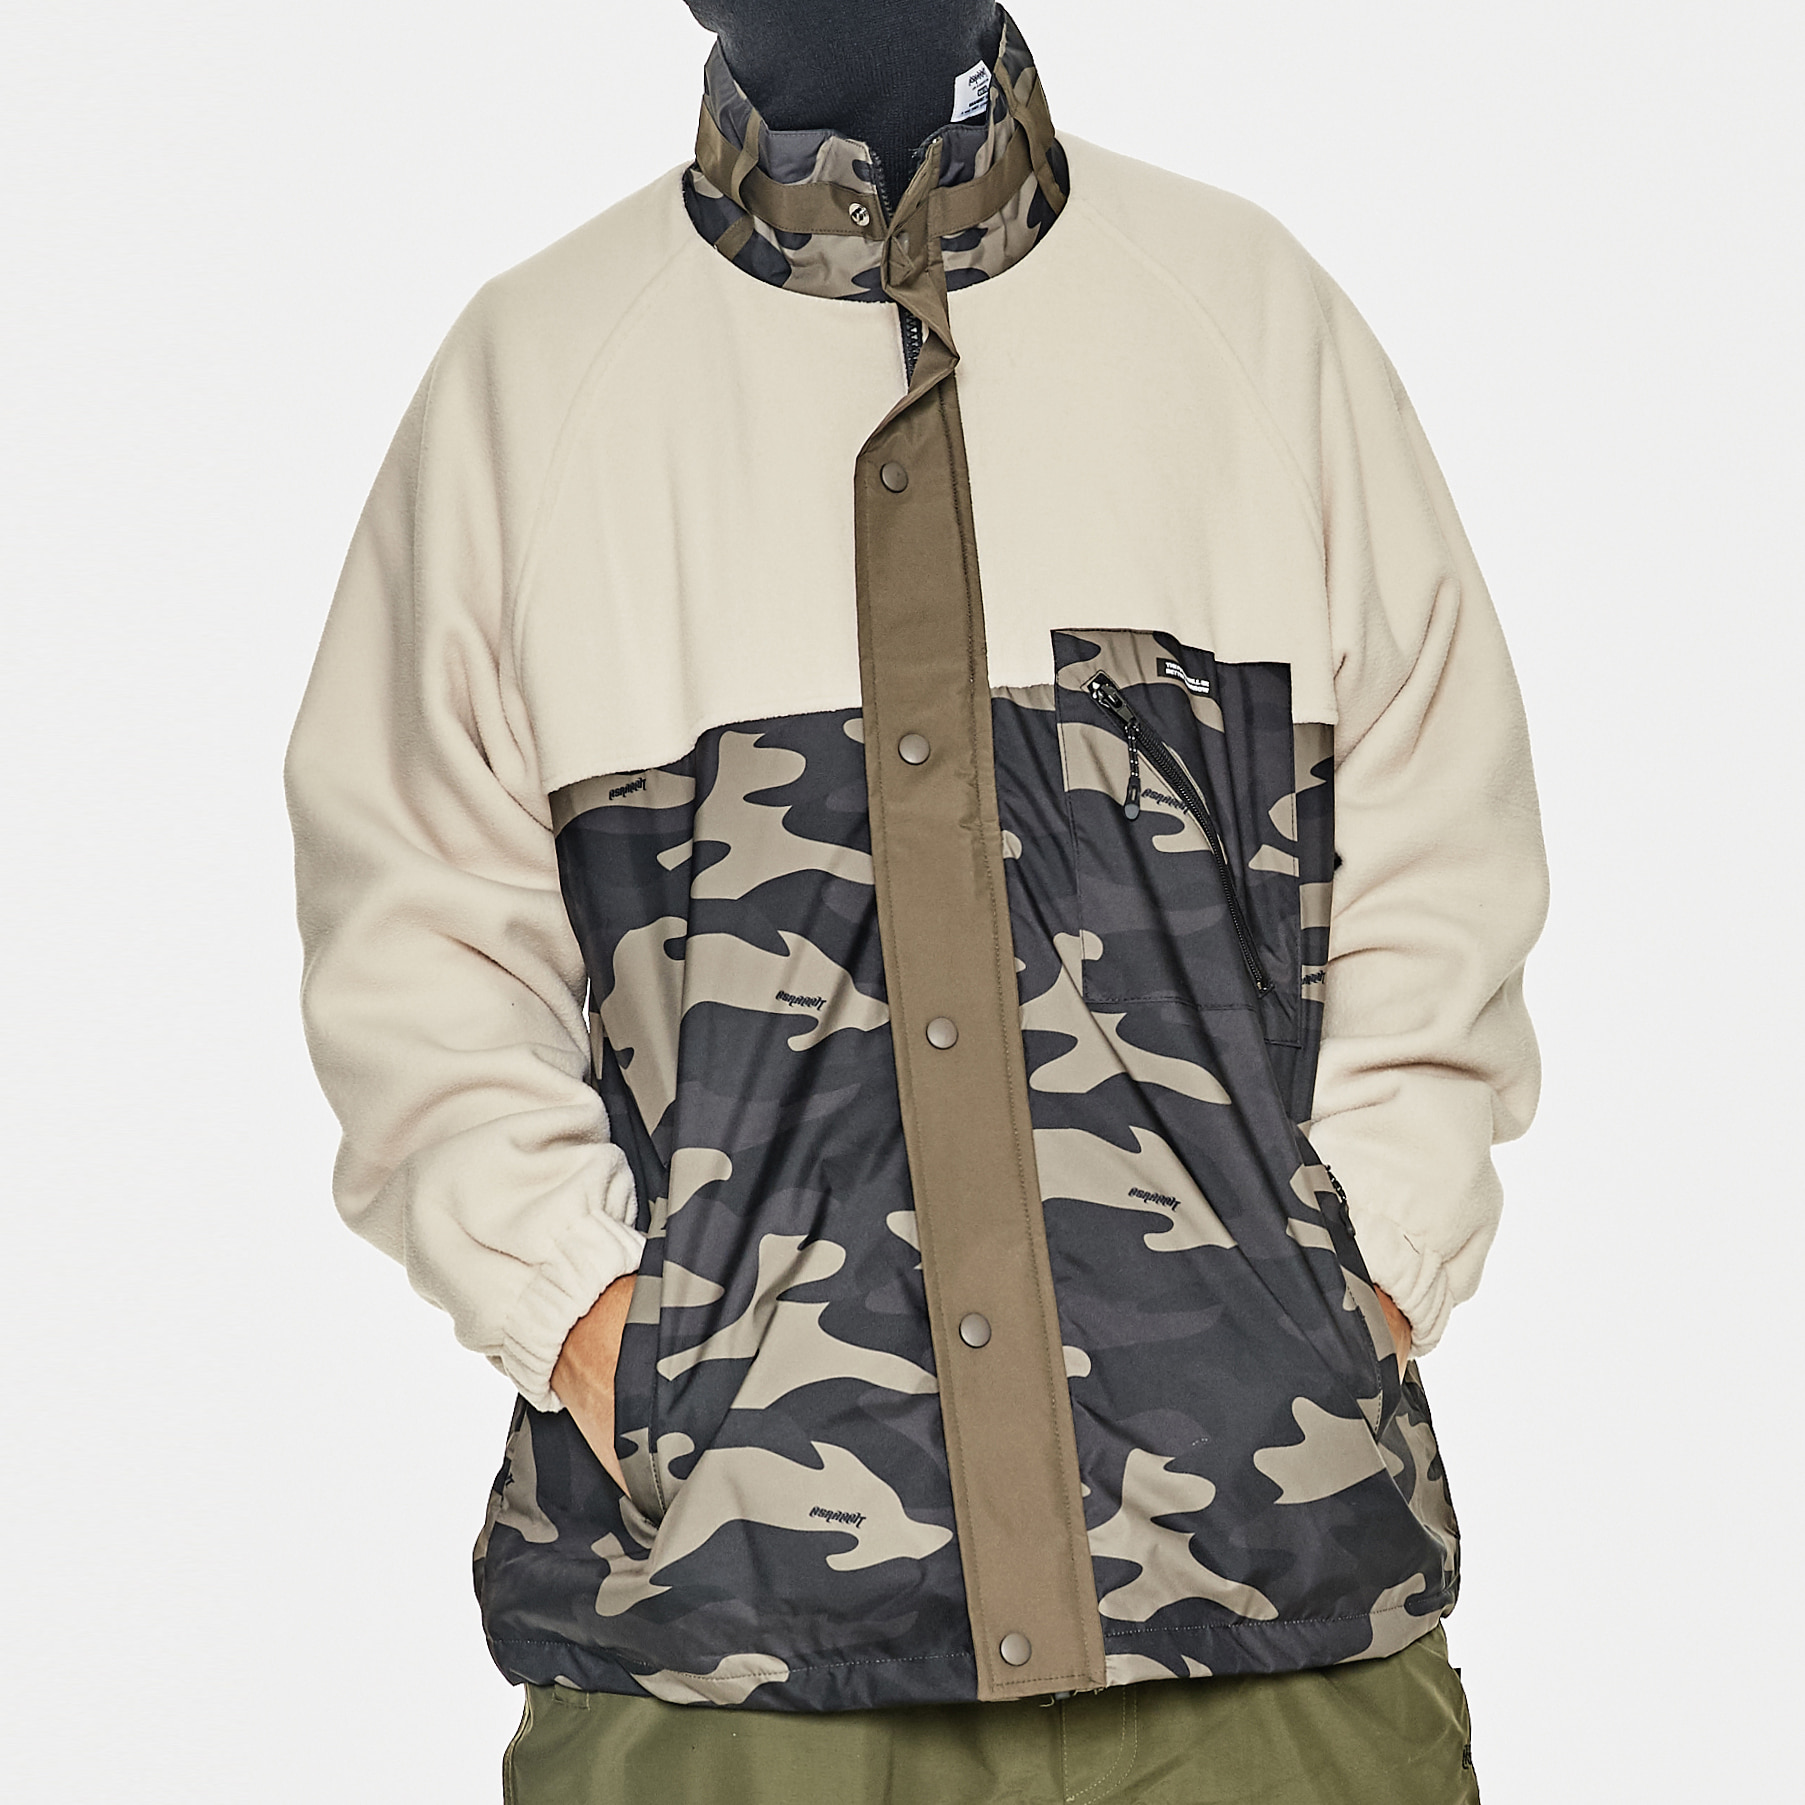 BSRABBIT SENSUAL FLEECE JACKET CAMO